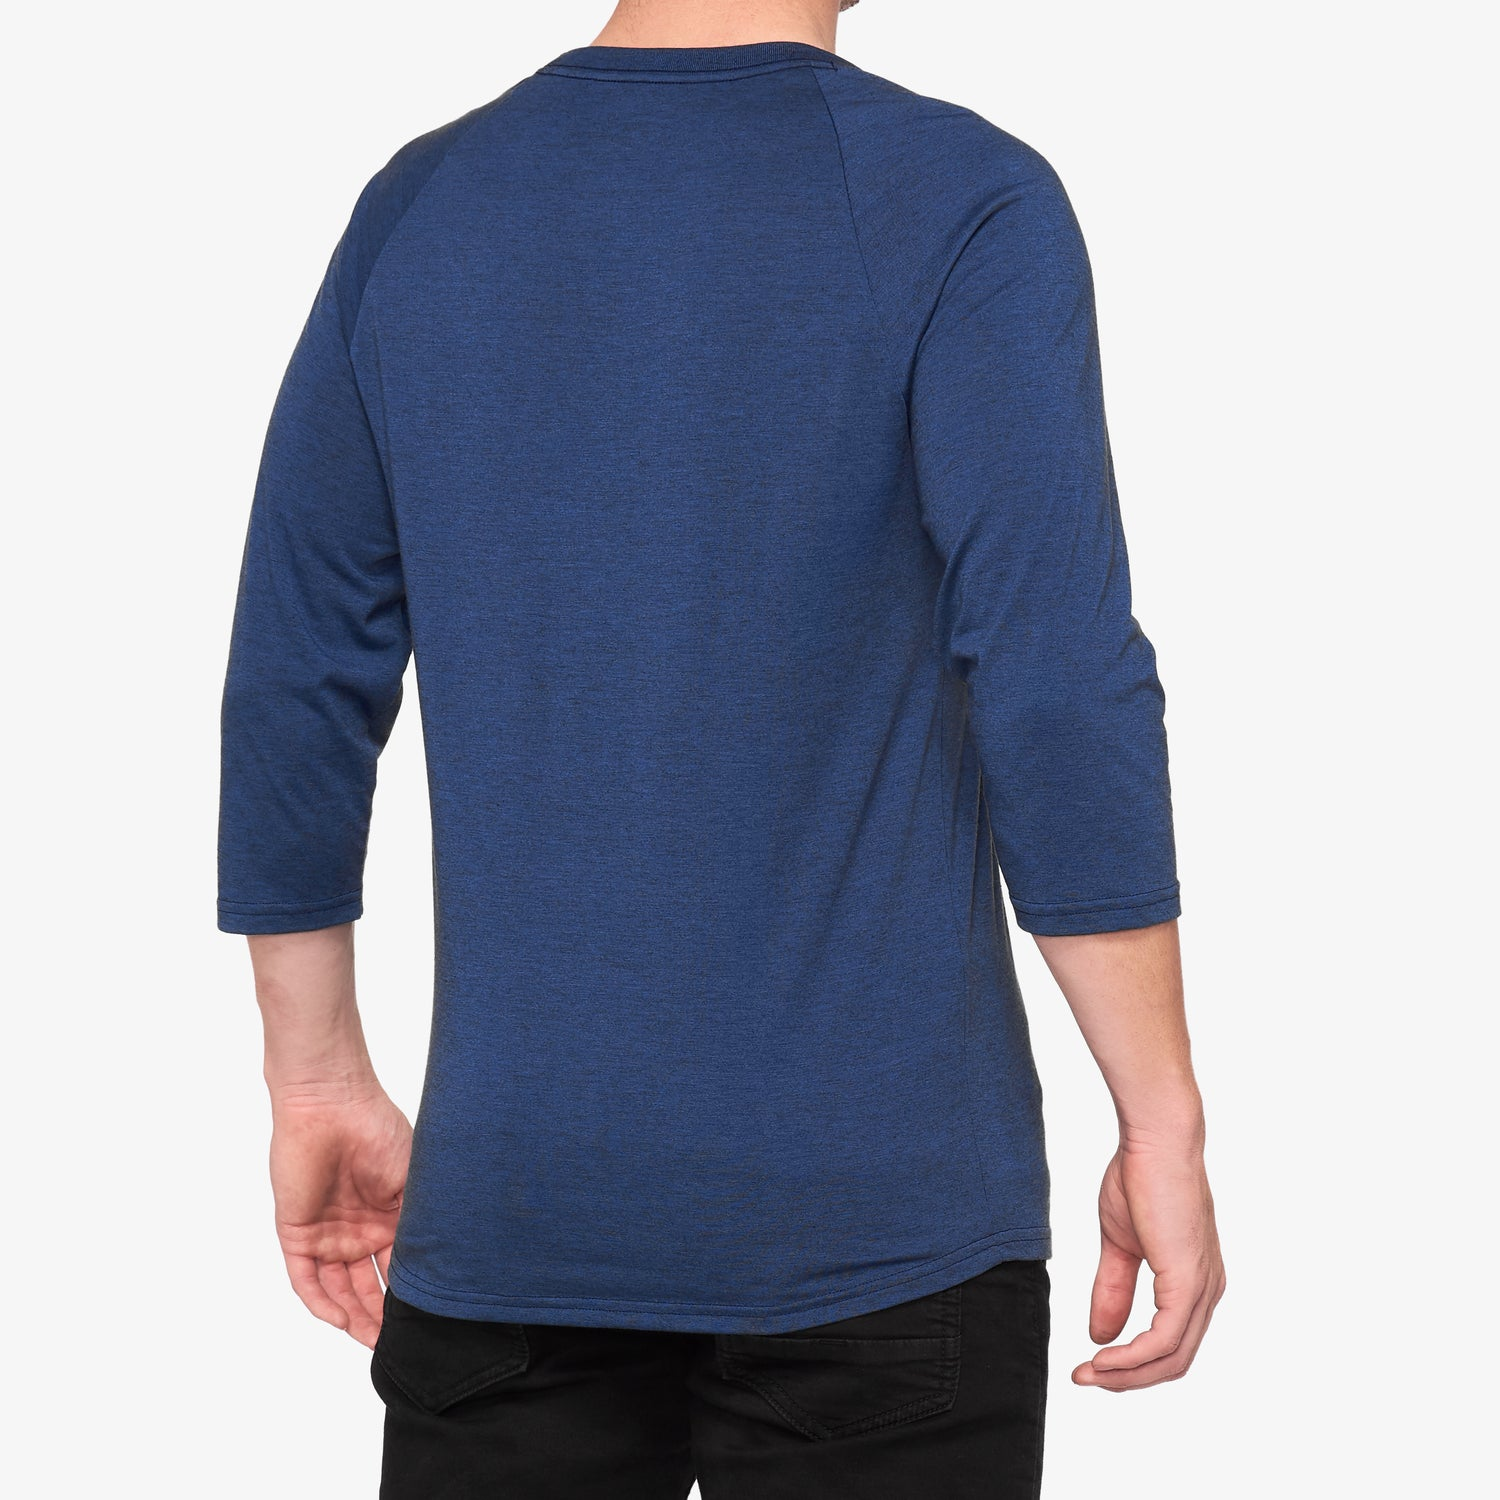 HELGI 3/4 Sleeve Tech Tee Navy Heather